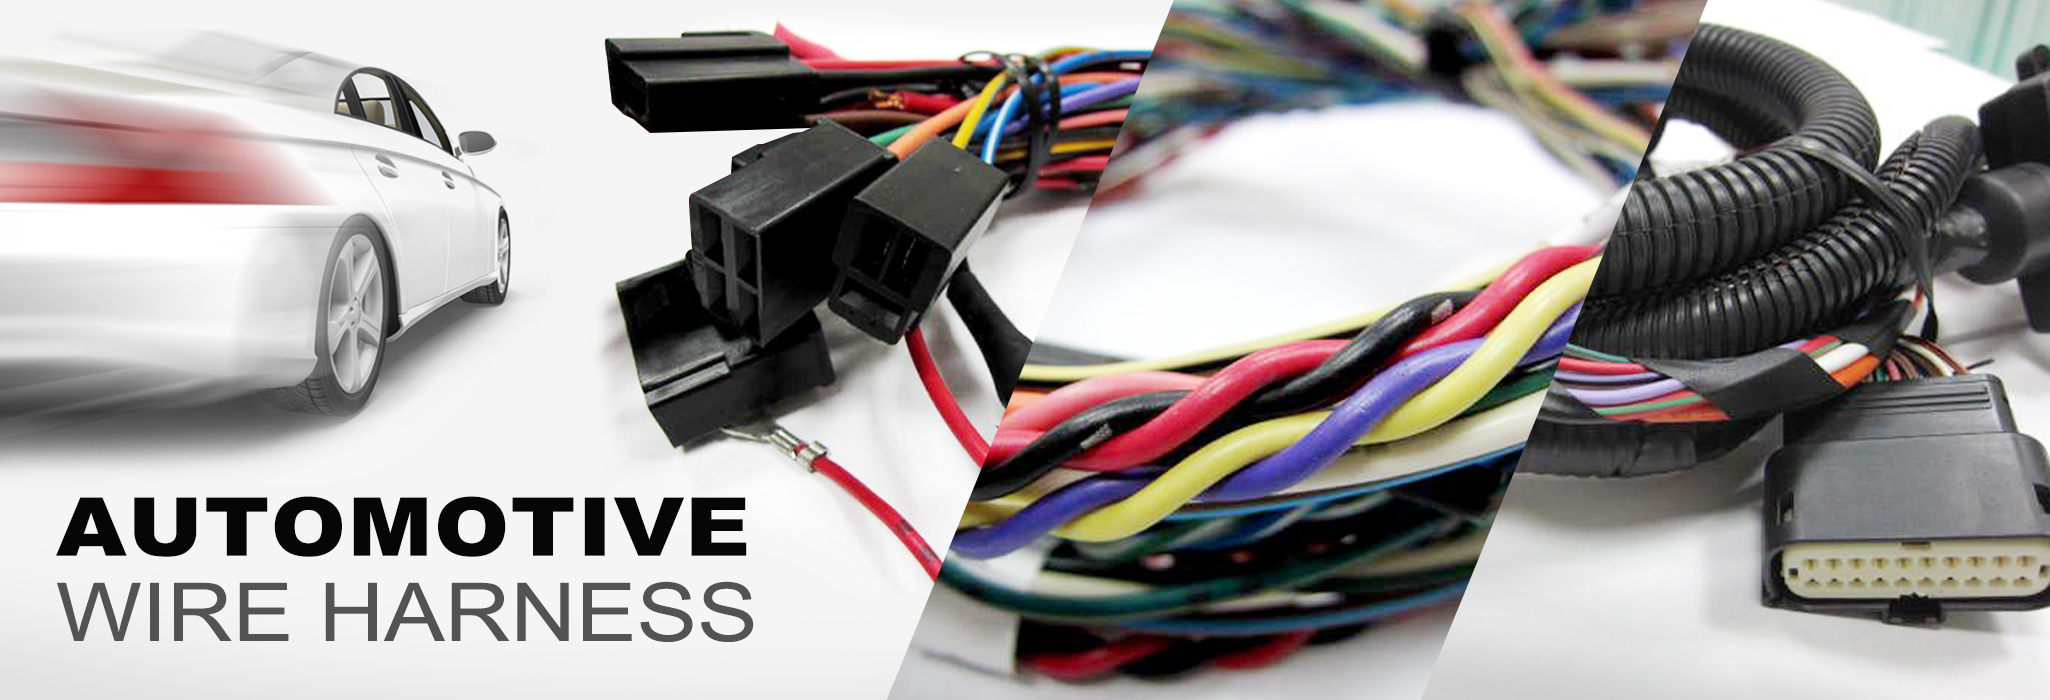 yuehder business co product 線 組automotive wire harness